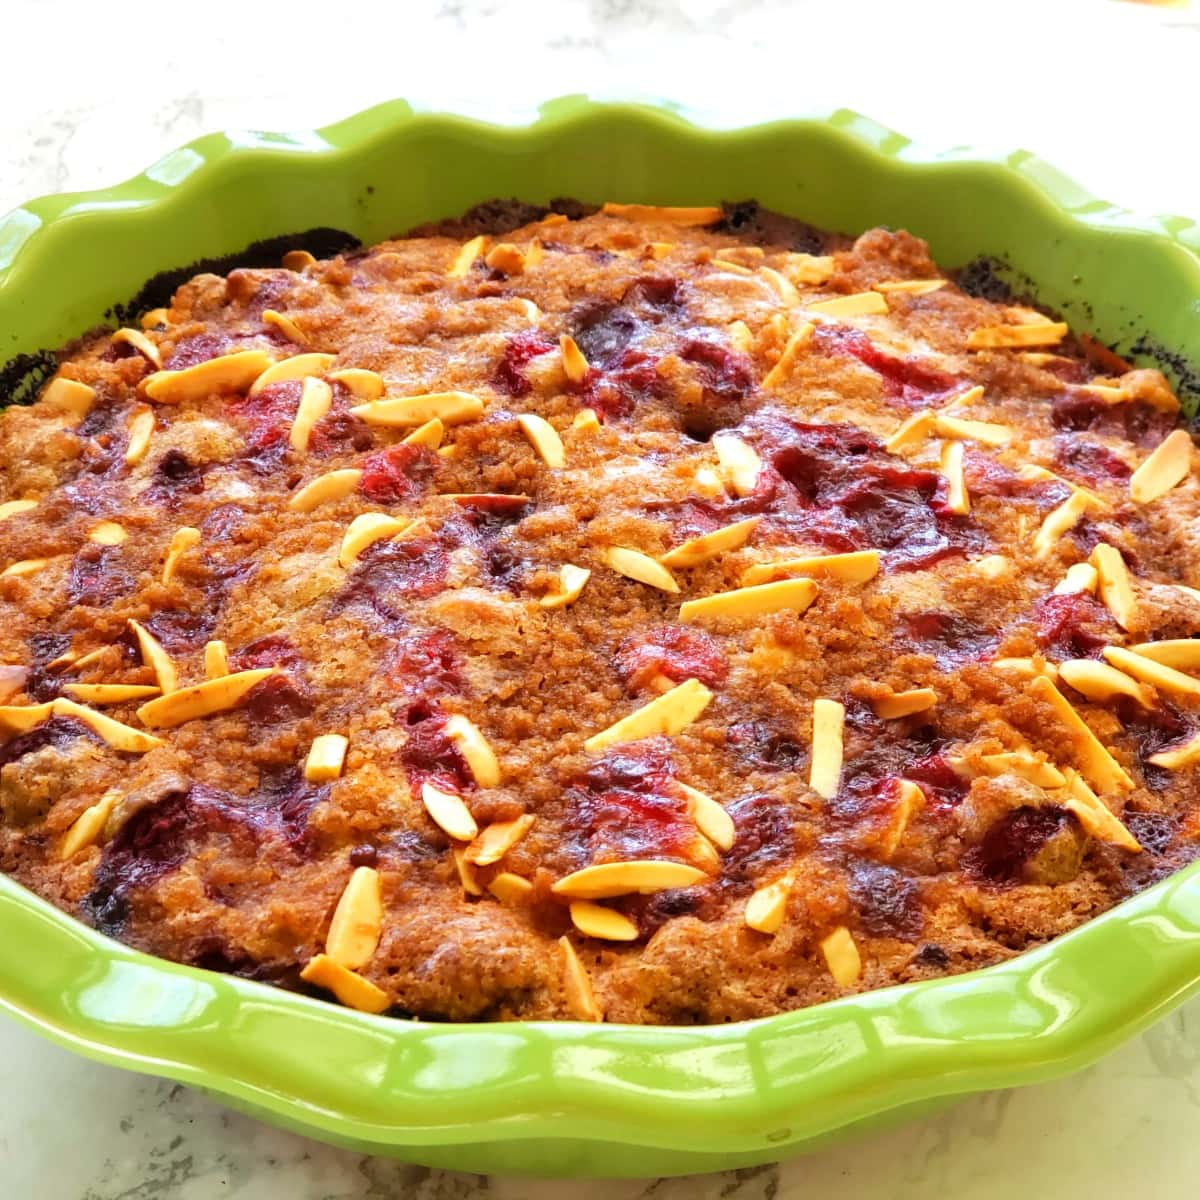 Cranberry Breakfast Cake baked and out of the oven